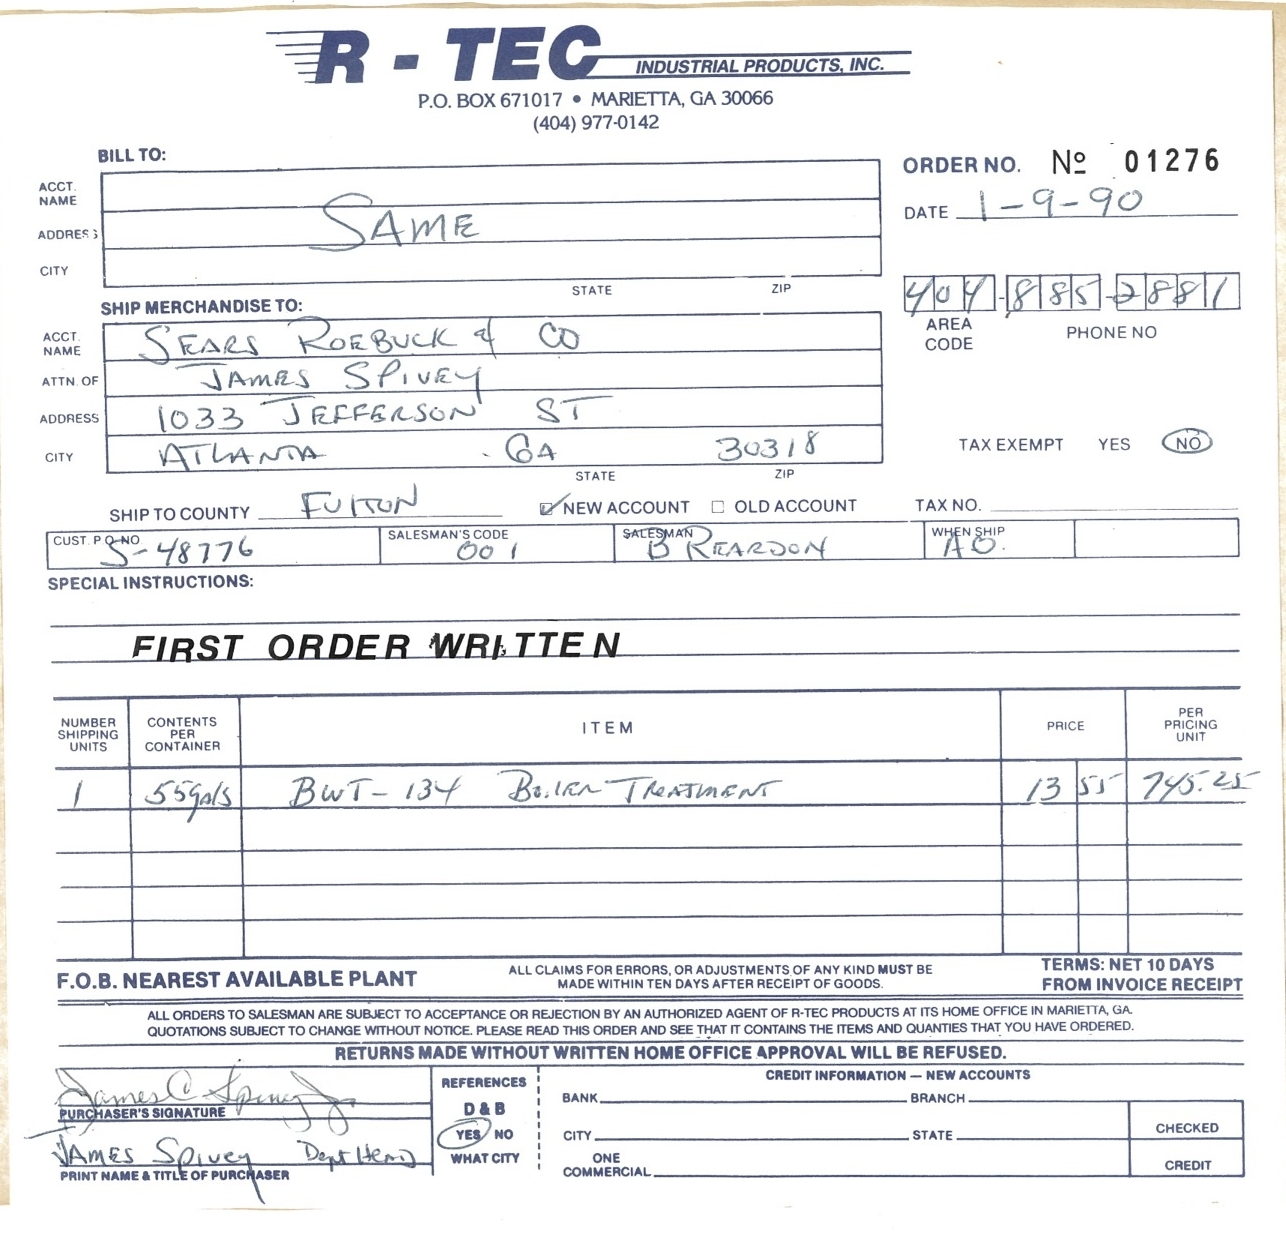 Ri-Tec's First order on january 9th, 1990